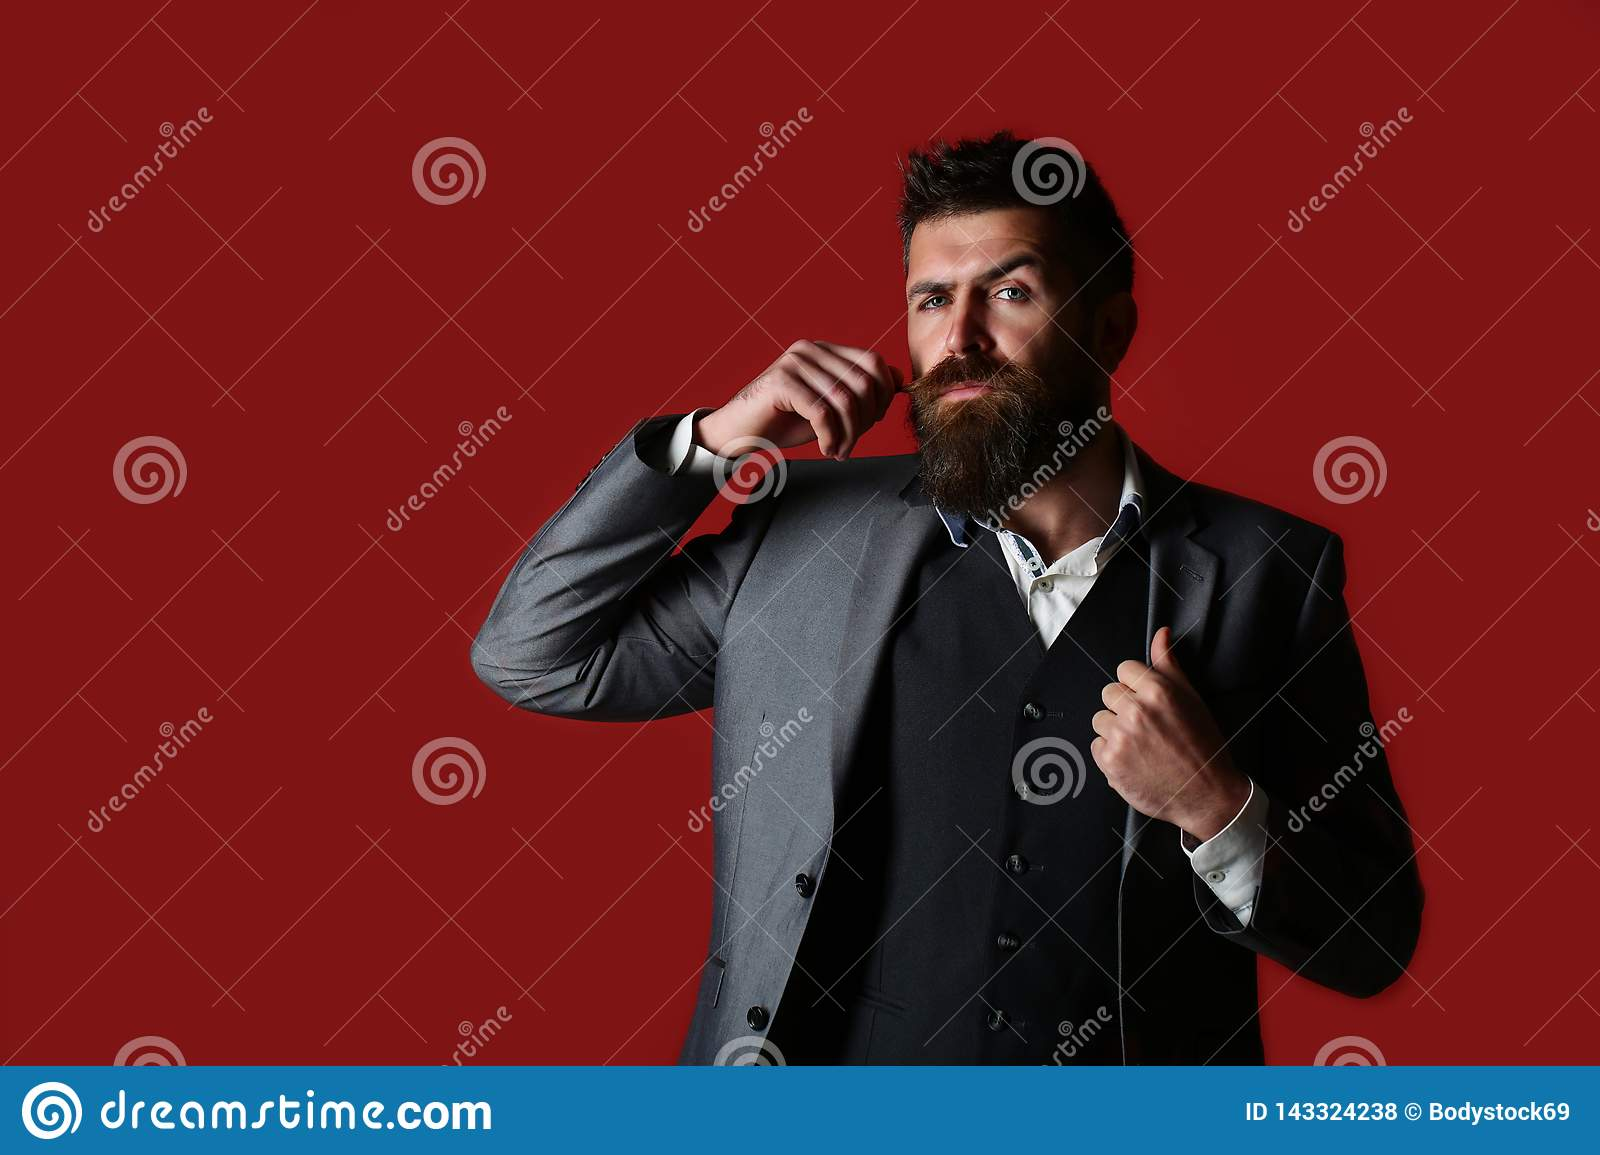 Studio portrait of a bearded hipster man. Male beard and mustache. Handsome stylish bearded man. Bearded man in suit and